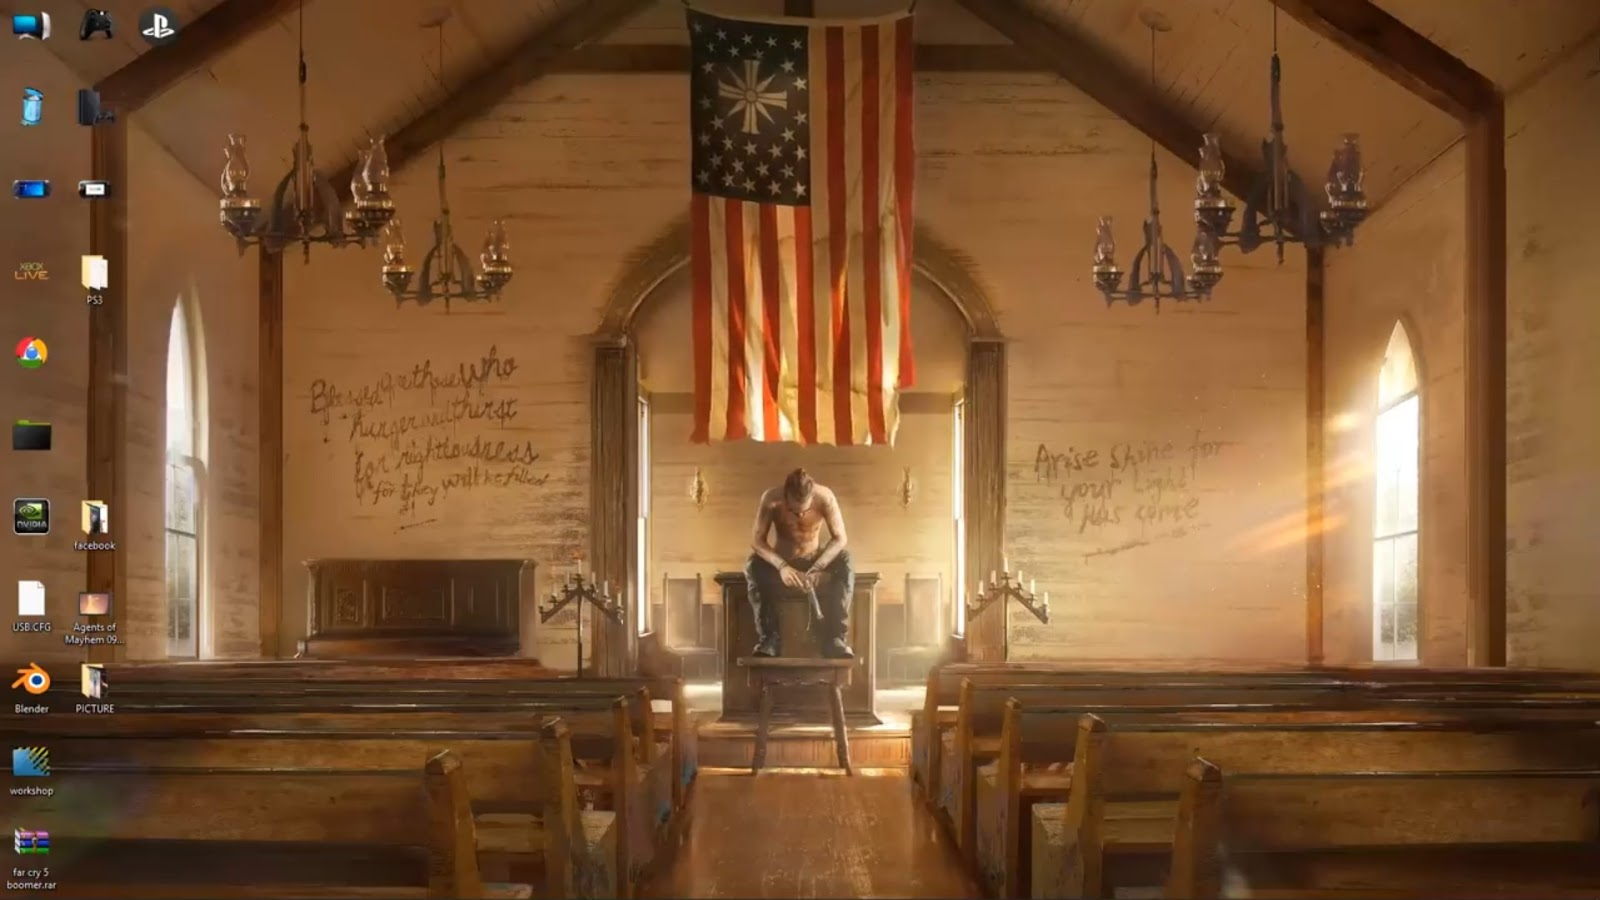 Wallpaper Engine Wallpaper Engine Far Cry 5 Only You 4k Animated Free Dowload